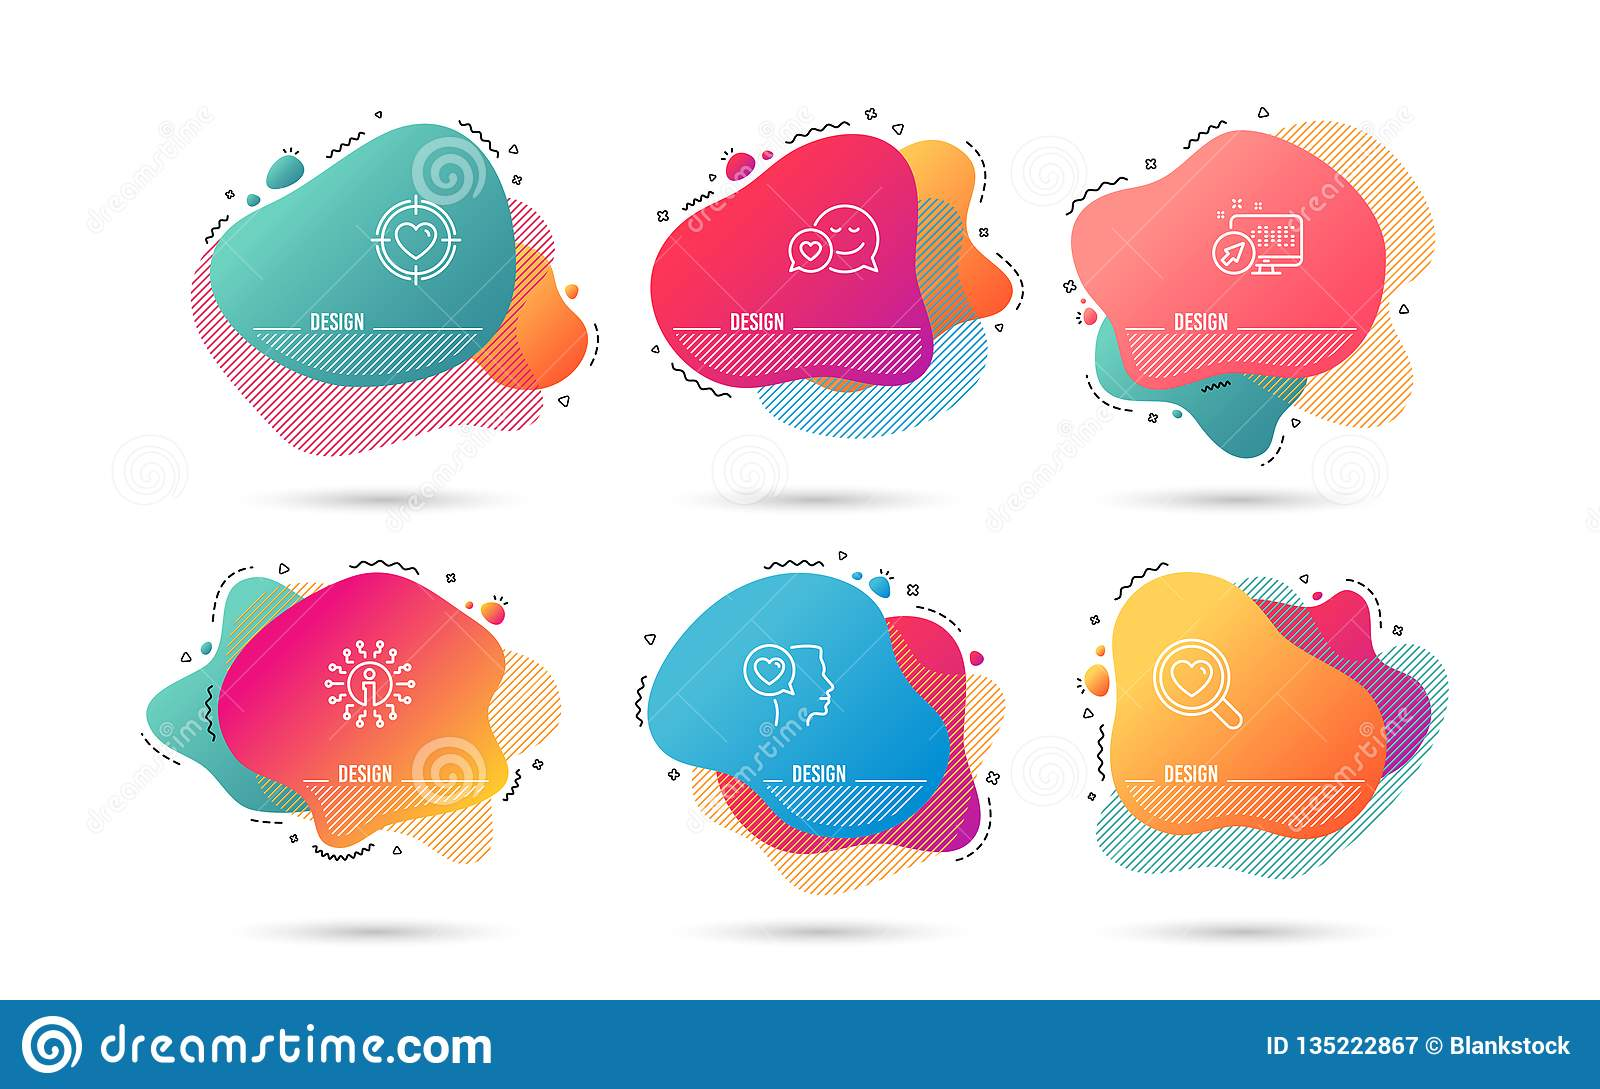 Romantic Talk Valentine Target And Dating Icons Search Love Sign Love Chat Heart In Aim Dating Service Vector Stock Vector Illustration Of Love Message 135222867